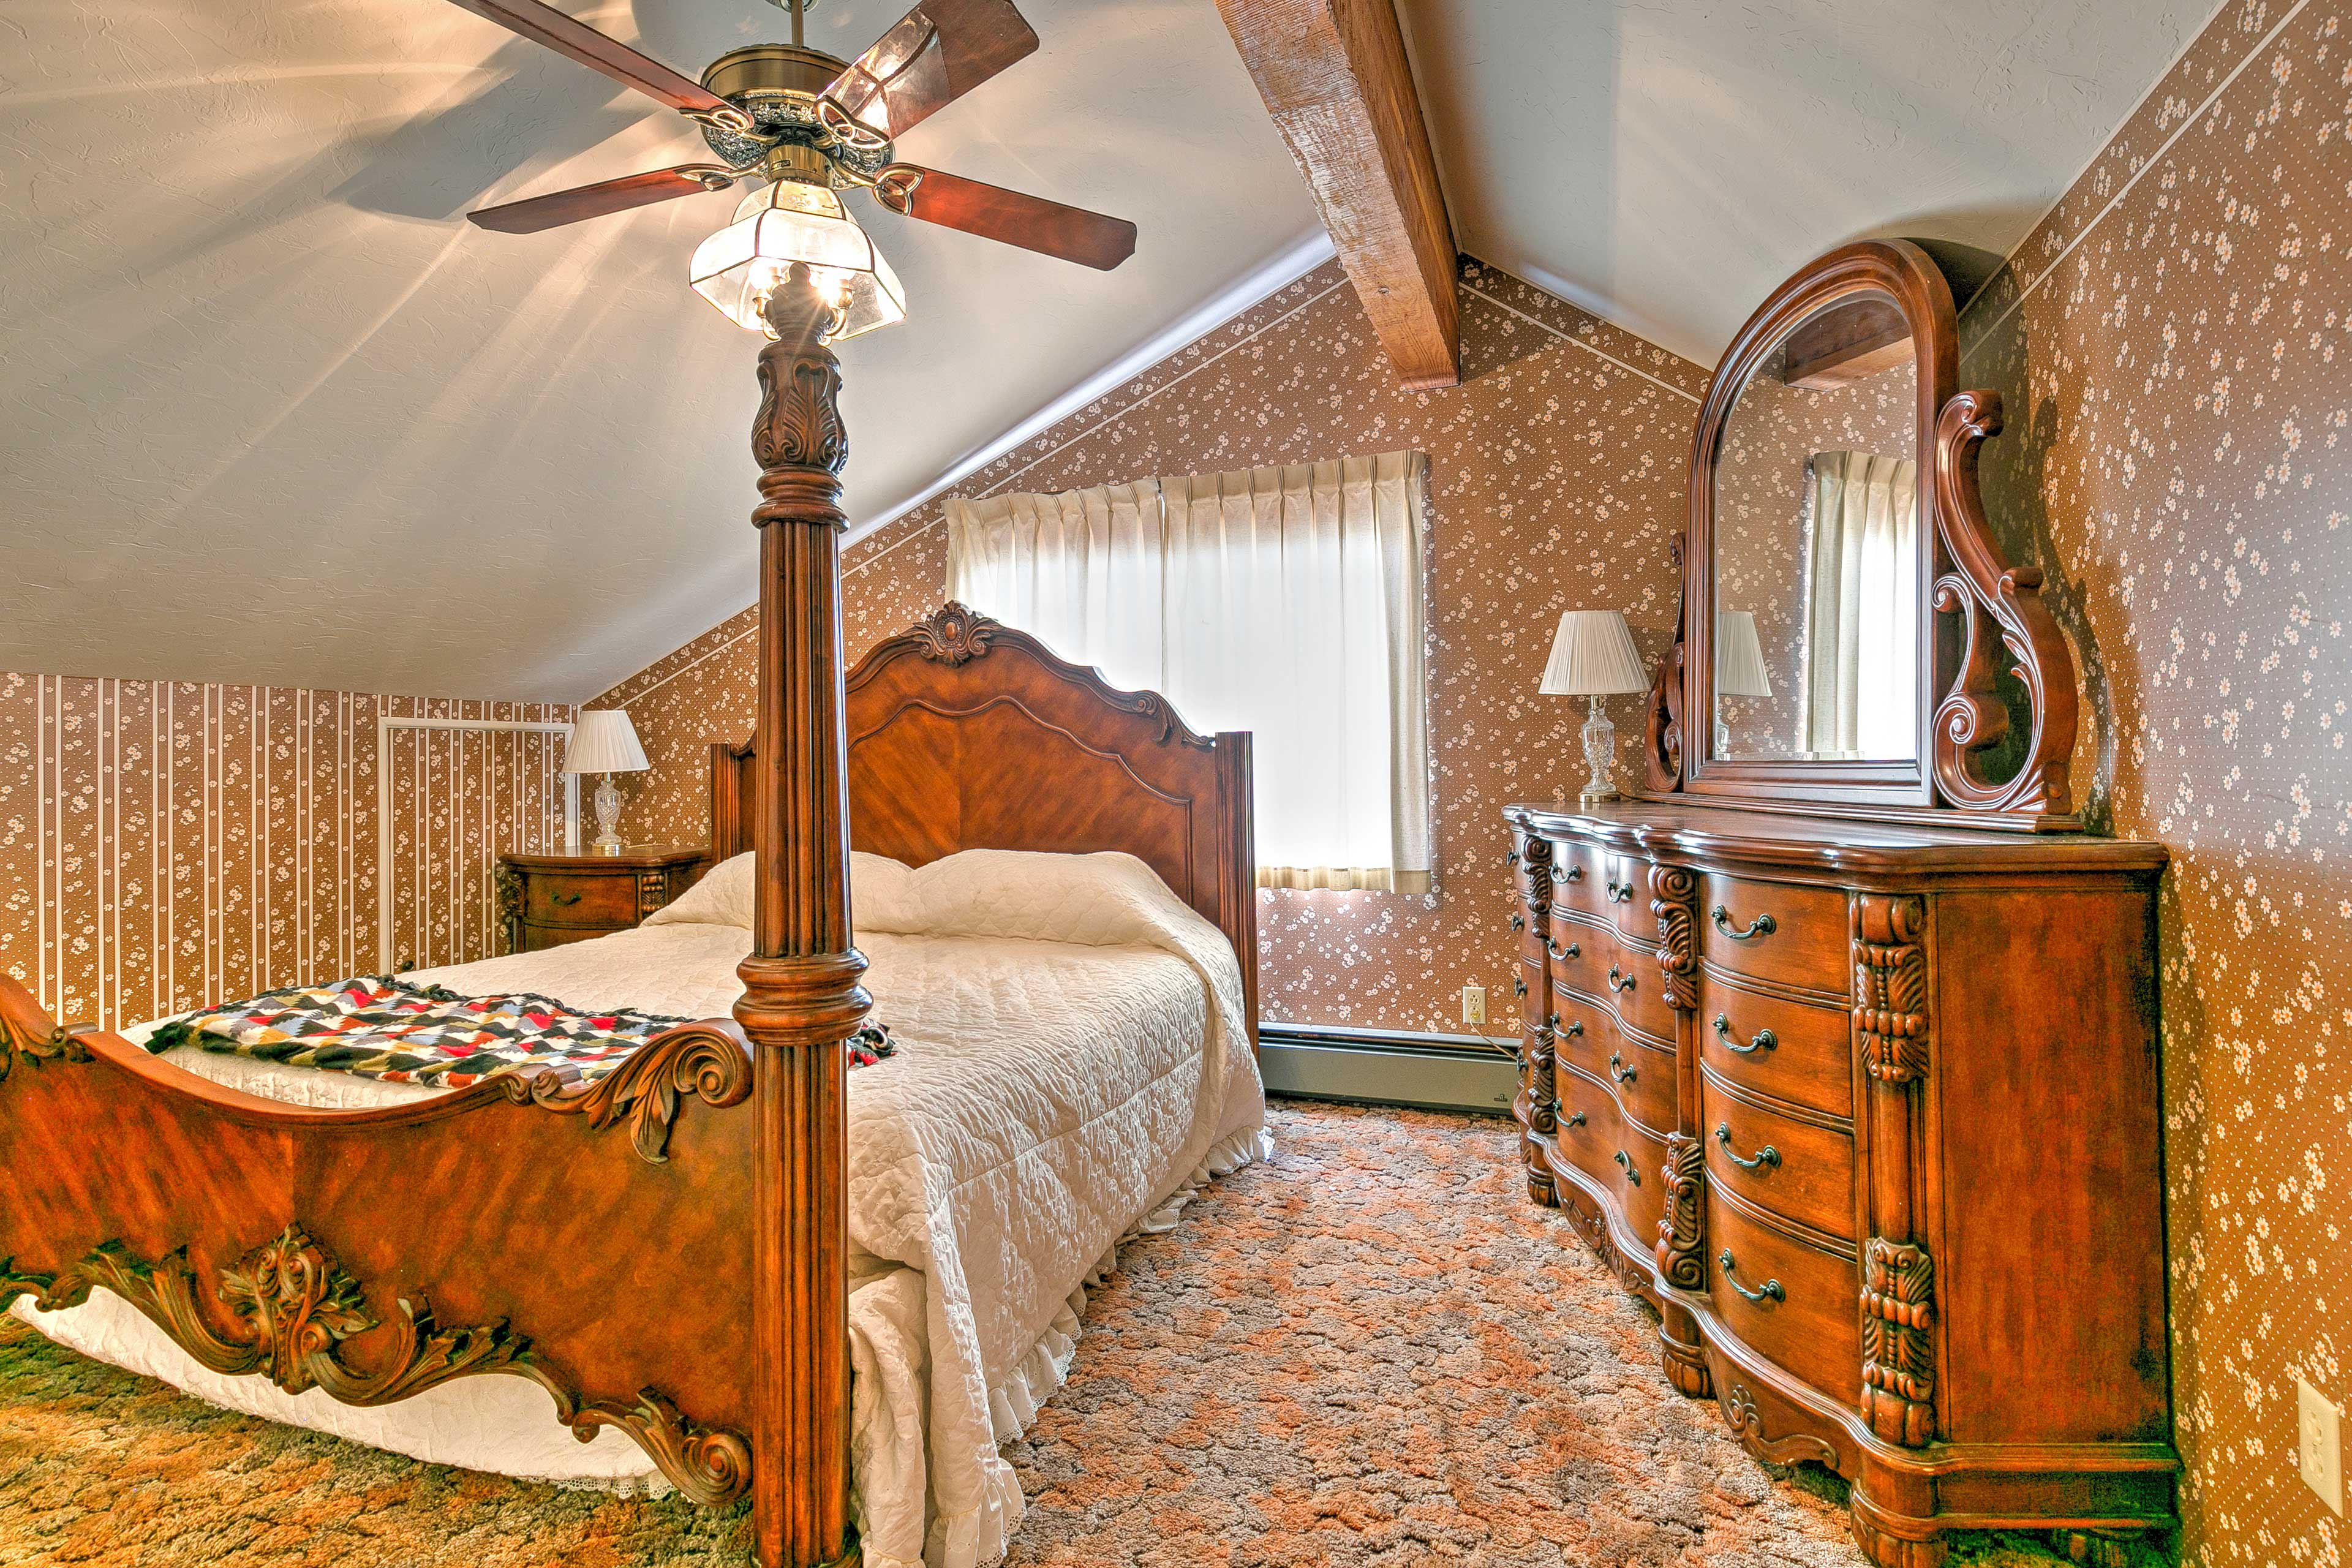 The master bedroom features a plush king-sized bed.